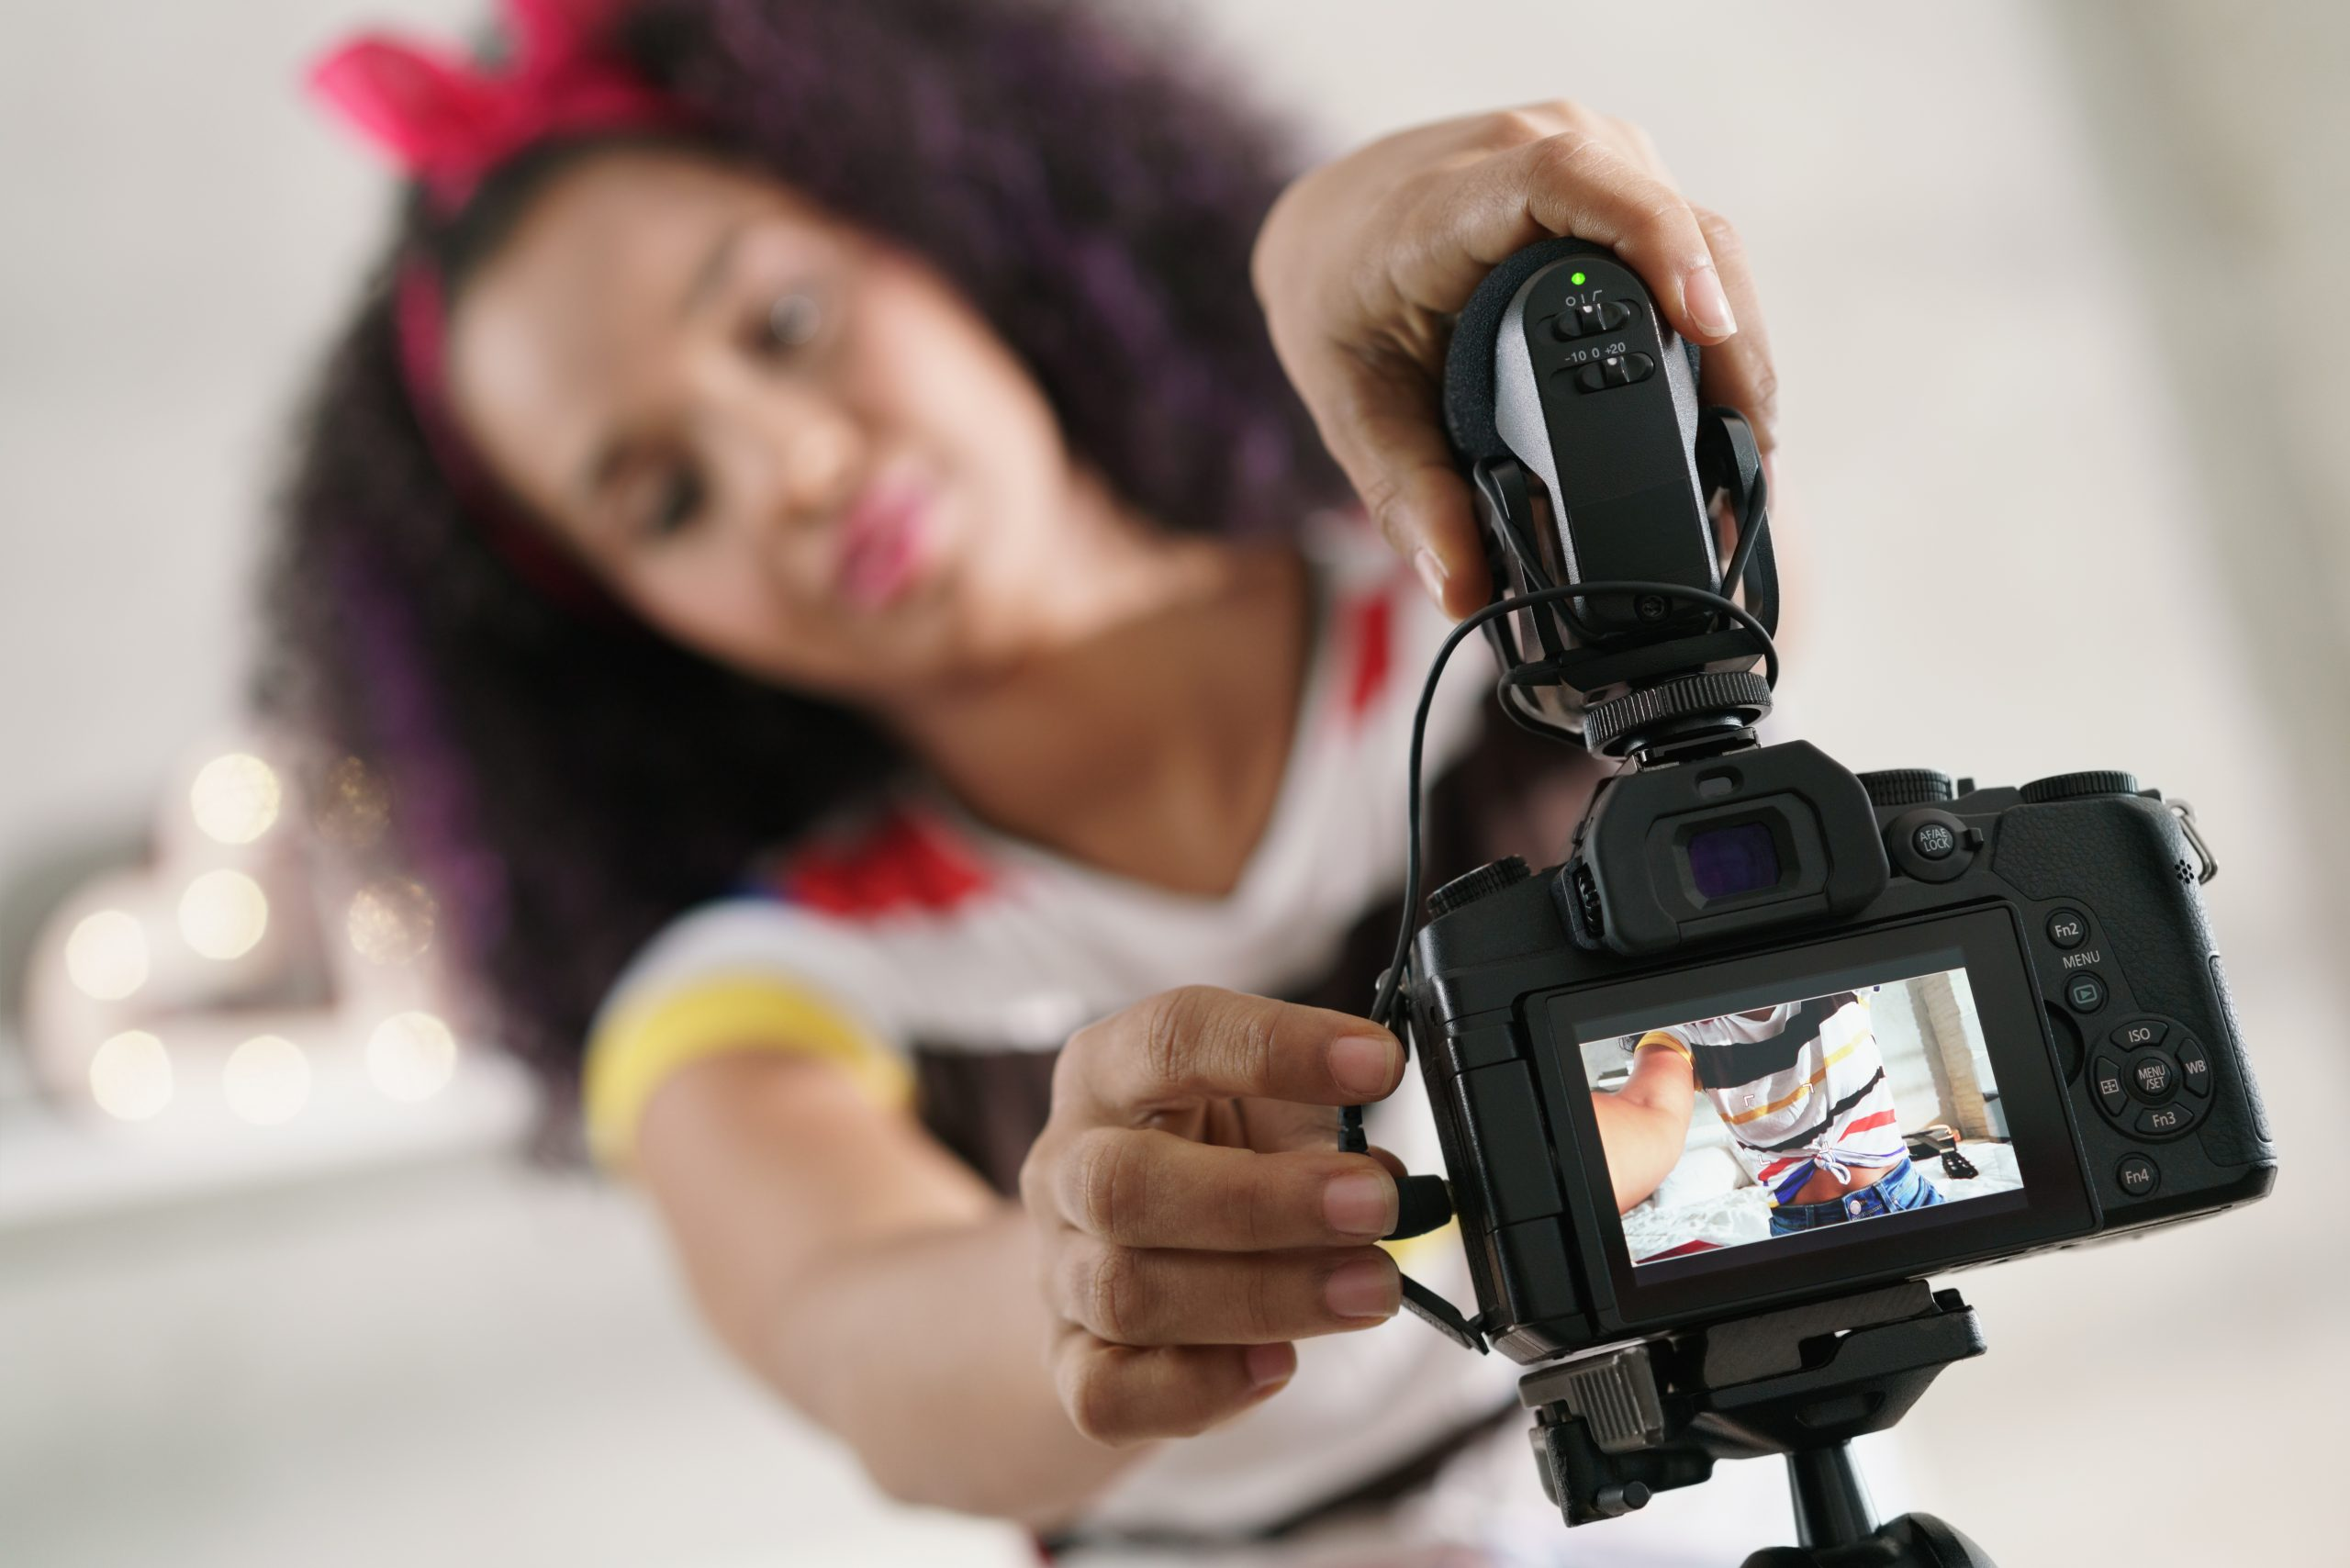 Black girl at home talking in front of camera, setting up microphone for recording Vlog at home. Young African American woman working as web influencer.